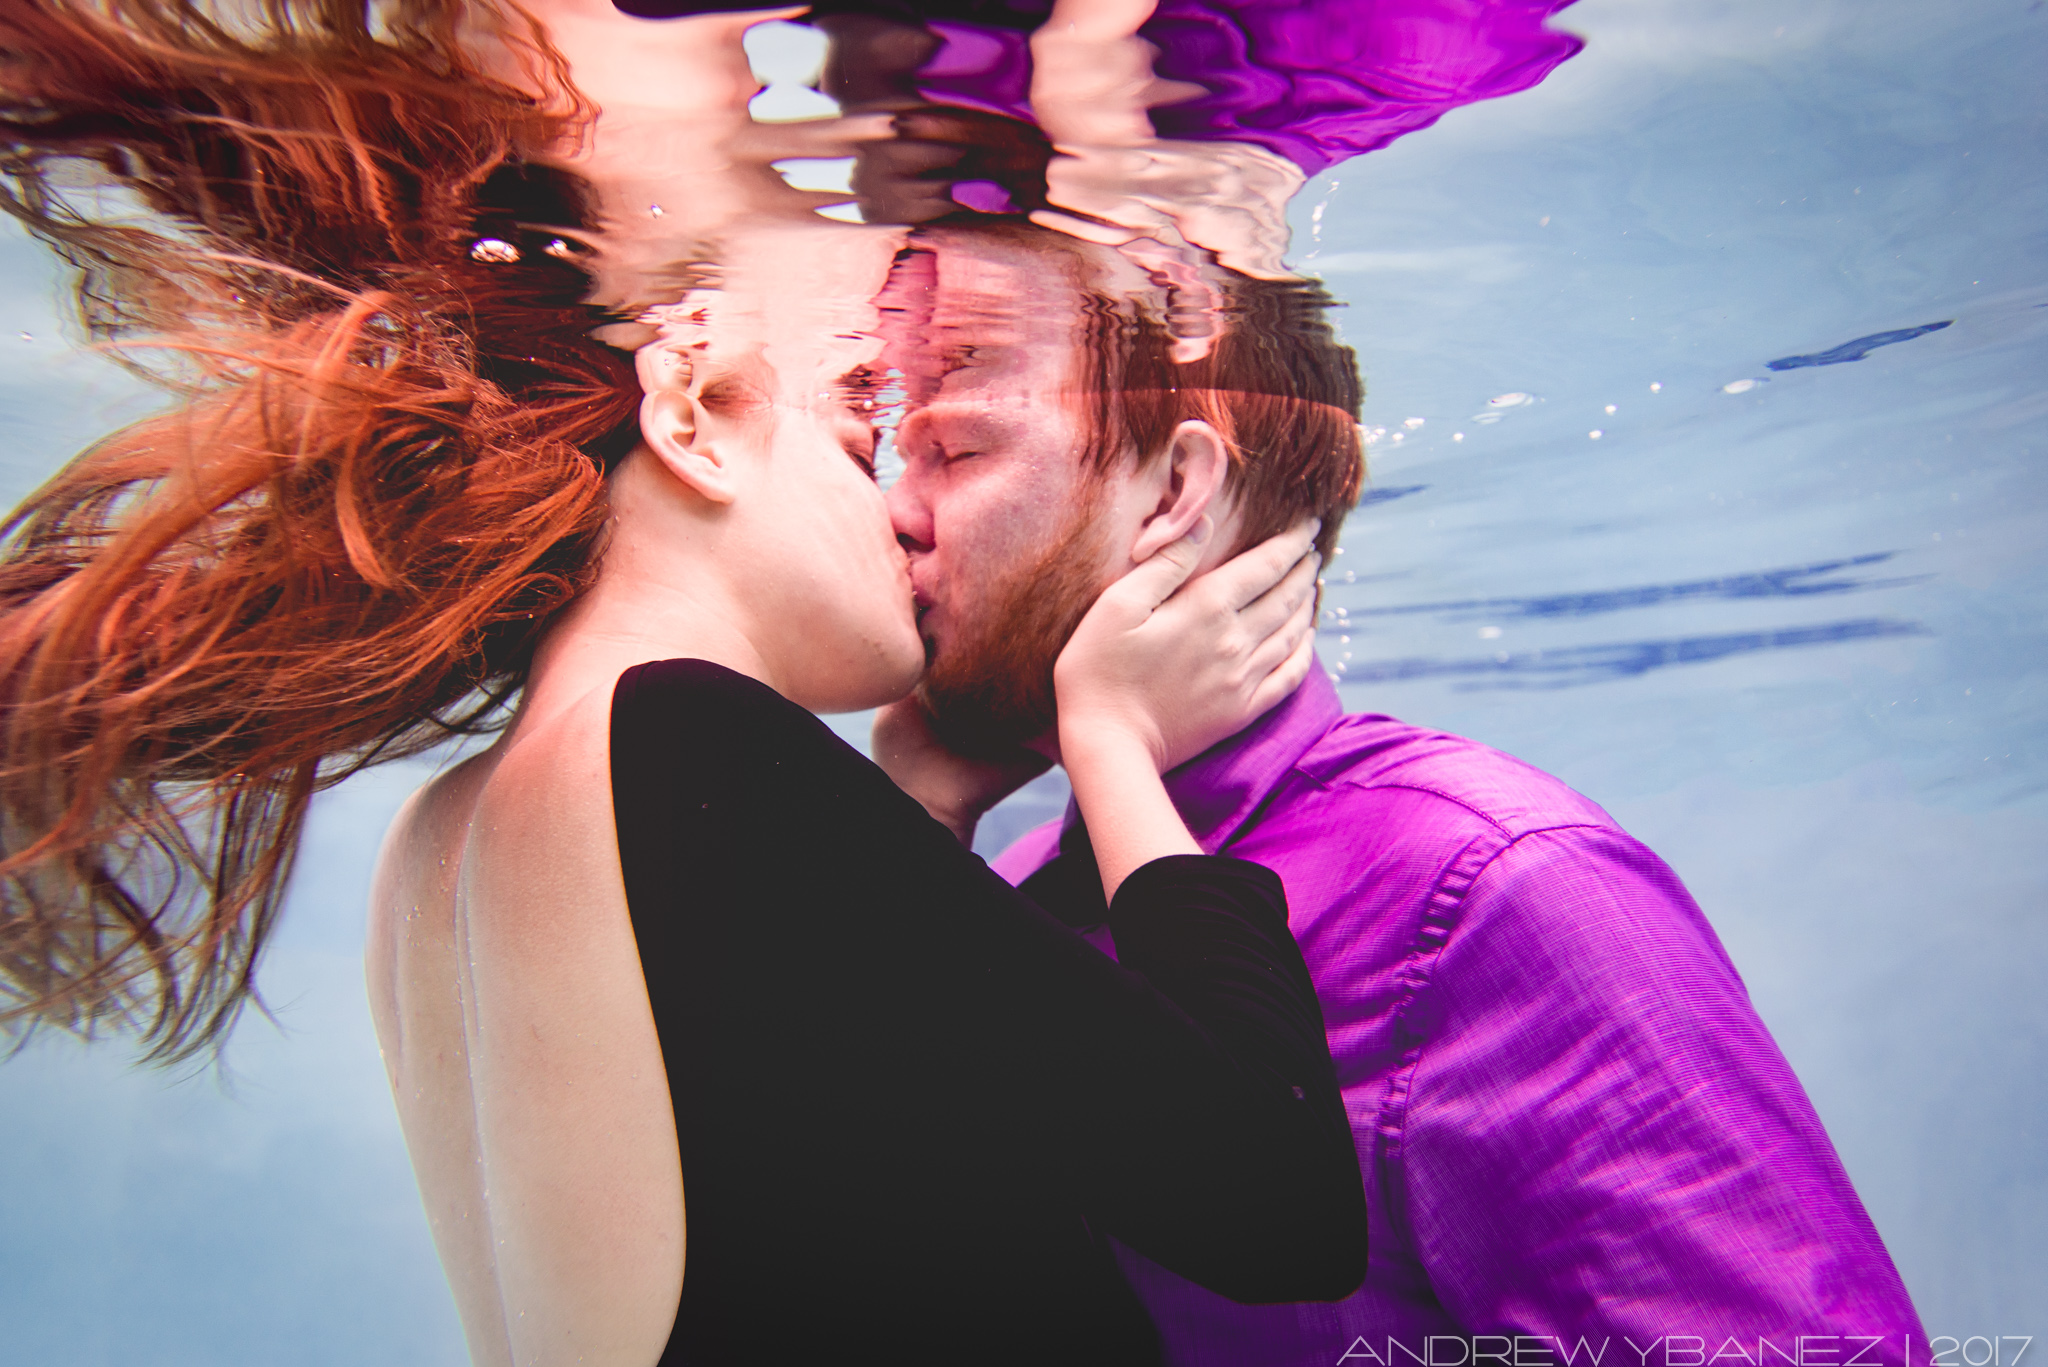 Underwater photography session with Andrew Ybanez  KIssing Under the Water  - Phoenix AZ   https://www.elementalfotos.com/underwater-sessions/